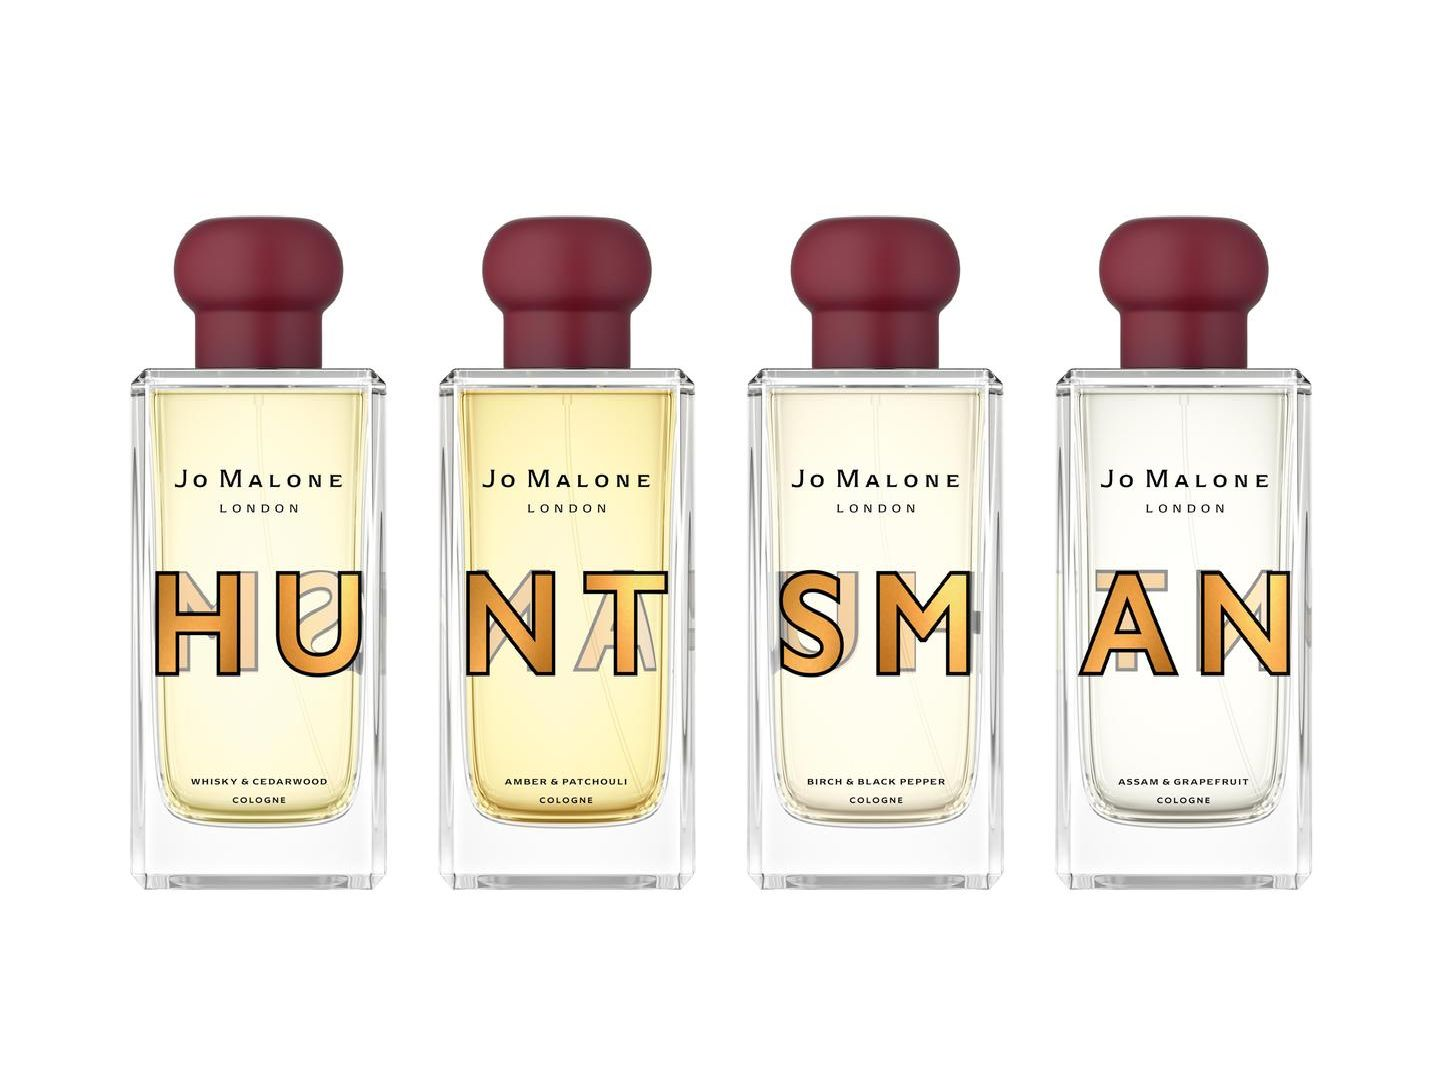 For him: Choose from four fragrances Amber & Patchouli, Assam & Grapefruit, Birch & Black Pepper, Whisky & Cedarwood. Each 100ml costs 120 at Jo Malone